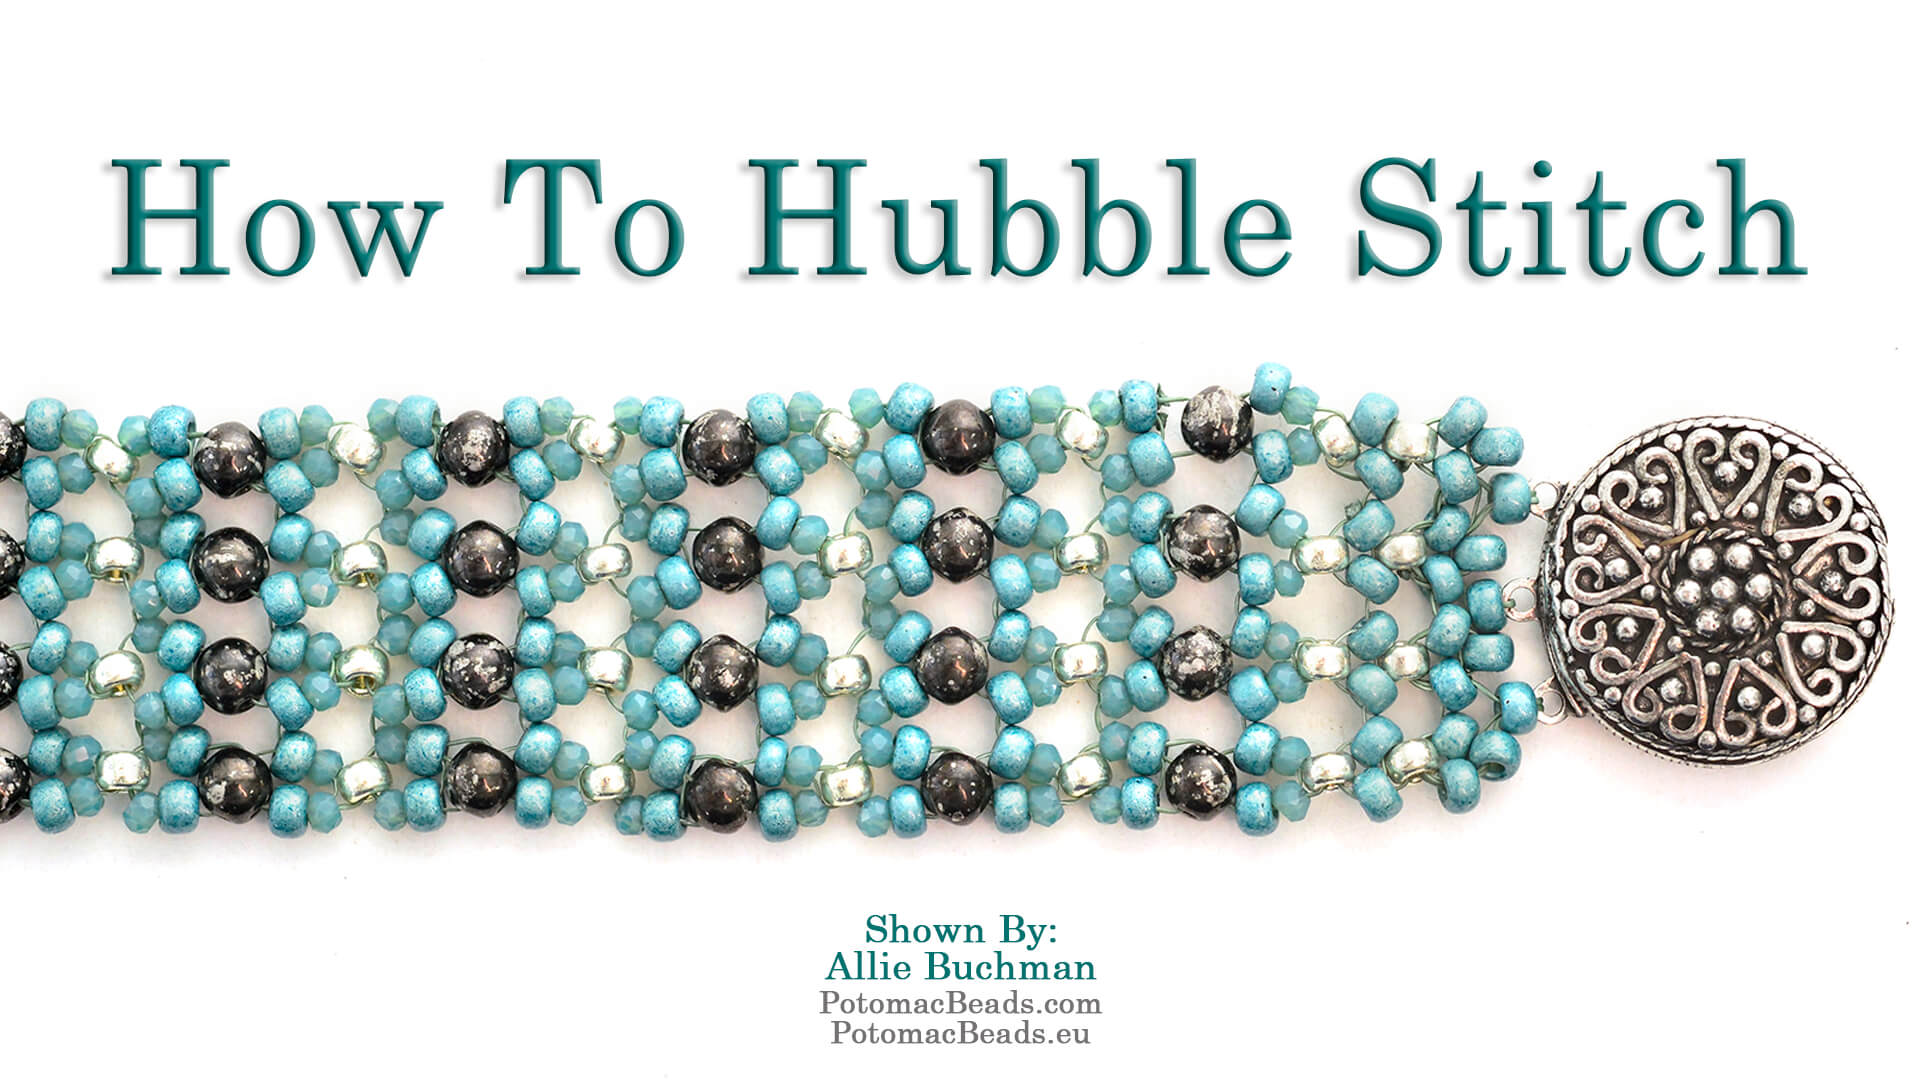 How to Bead / Videos Sorted by Beads / RounDuo® & RounDuo® Mini Bead Videos / How to Hubble Stitch